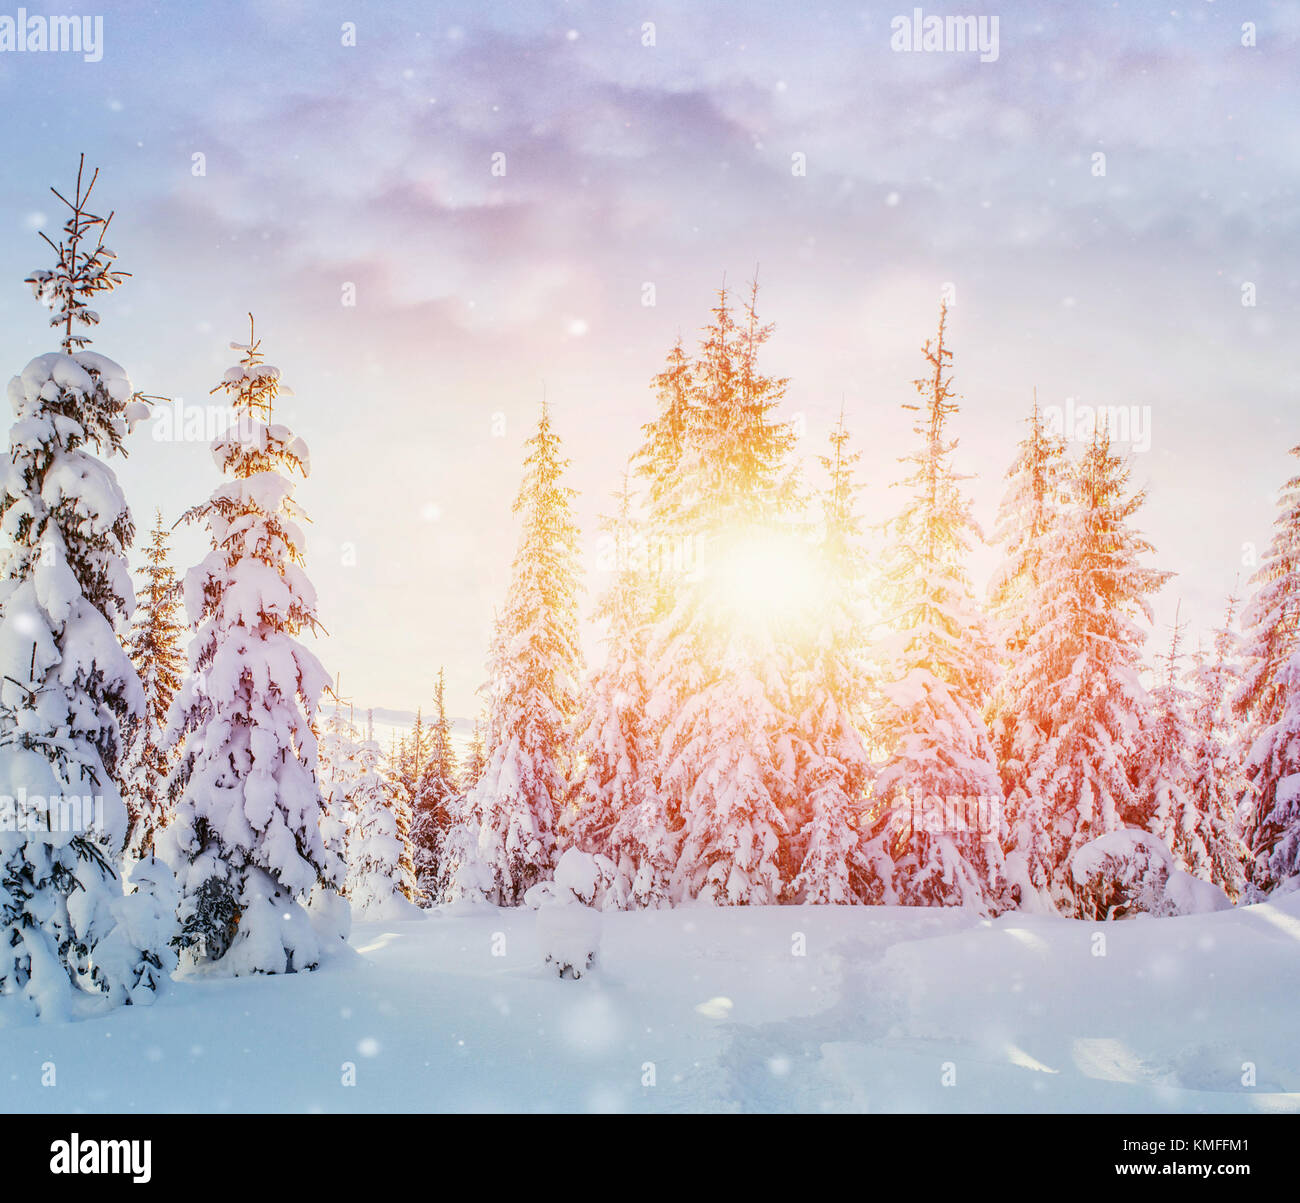 Mysterious winter landscape majestic mountains in winter. Magical winter snow covered tree. Photo greeting card. - Stock Image